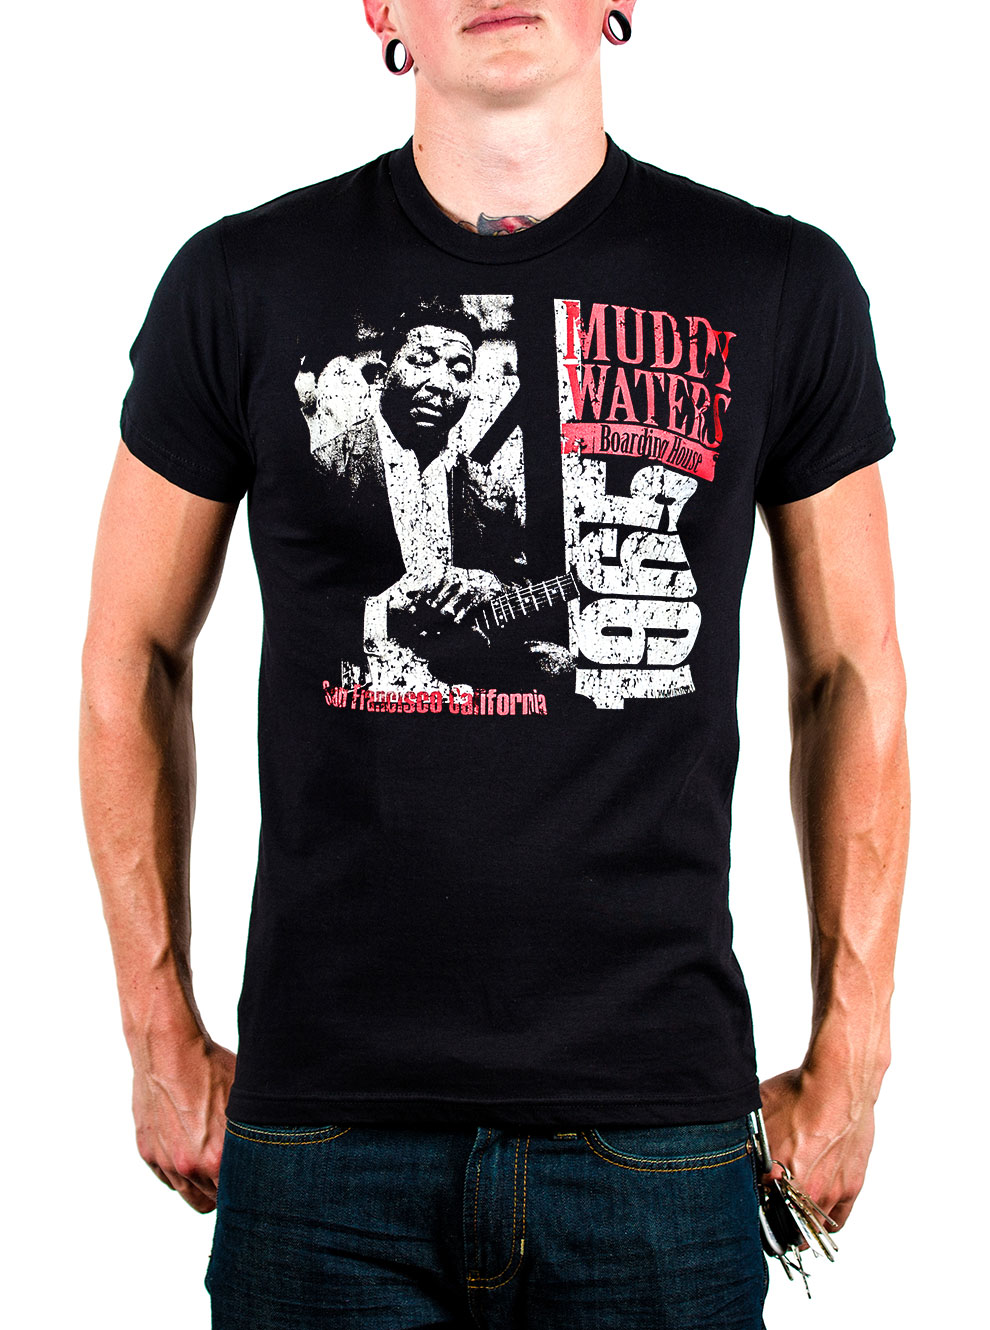 Muddy Waters Boarding House T-shirt image